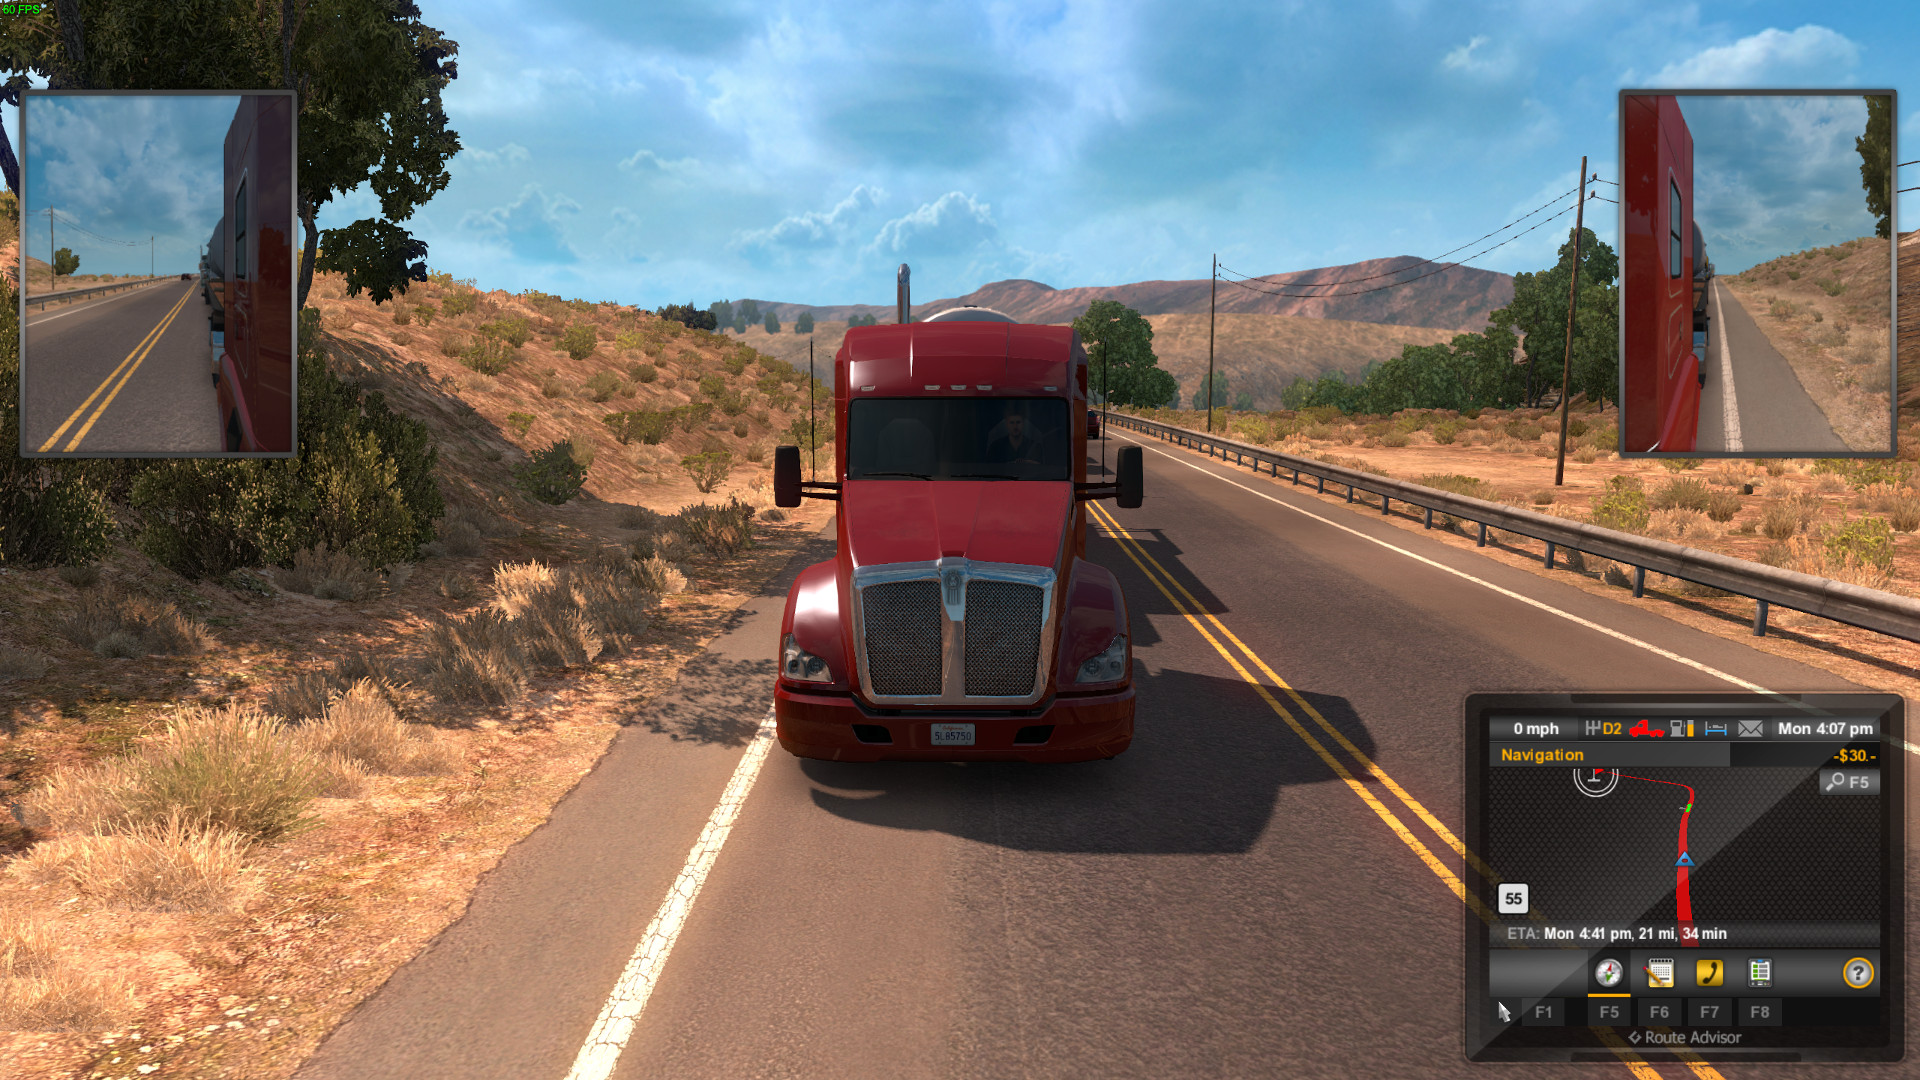 I played American Truck Simulator on Linux, don't ever let